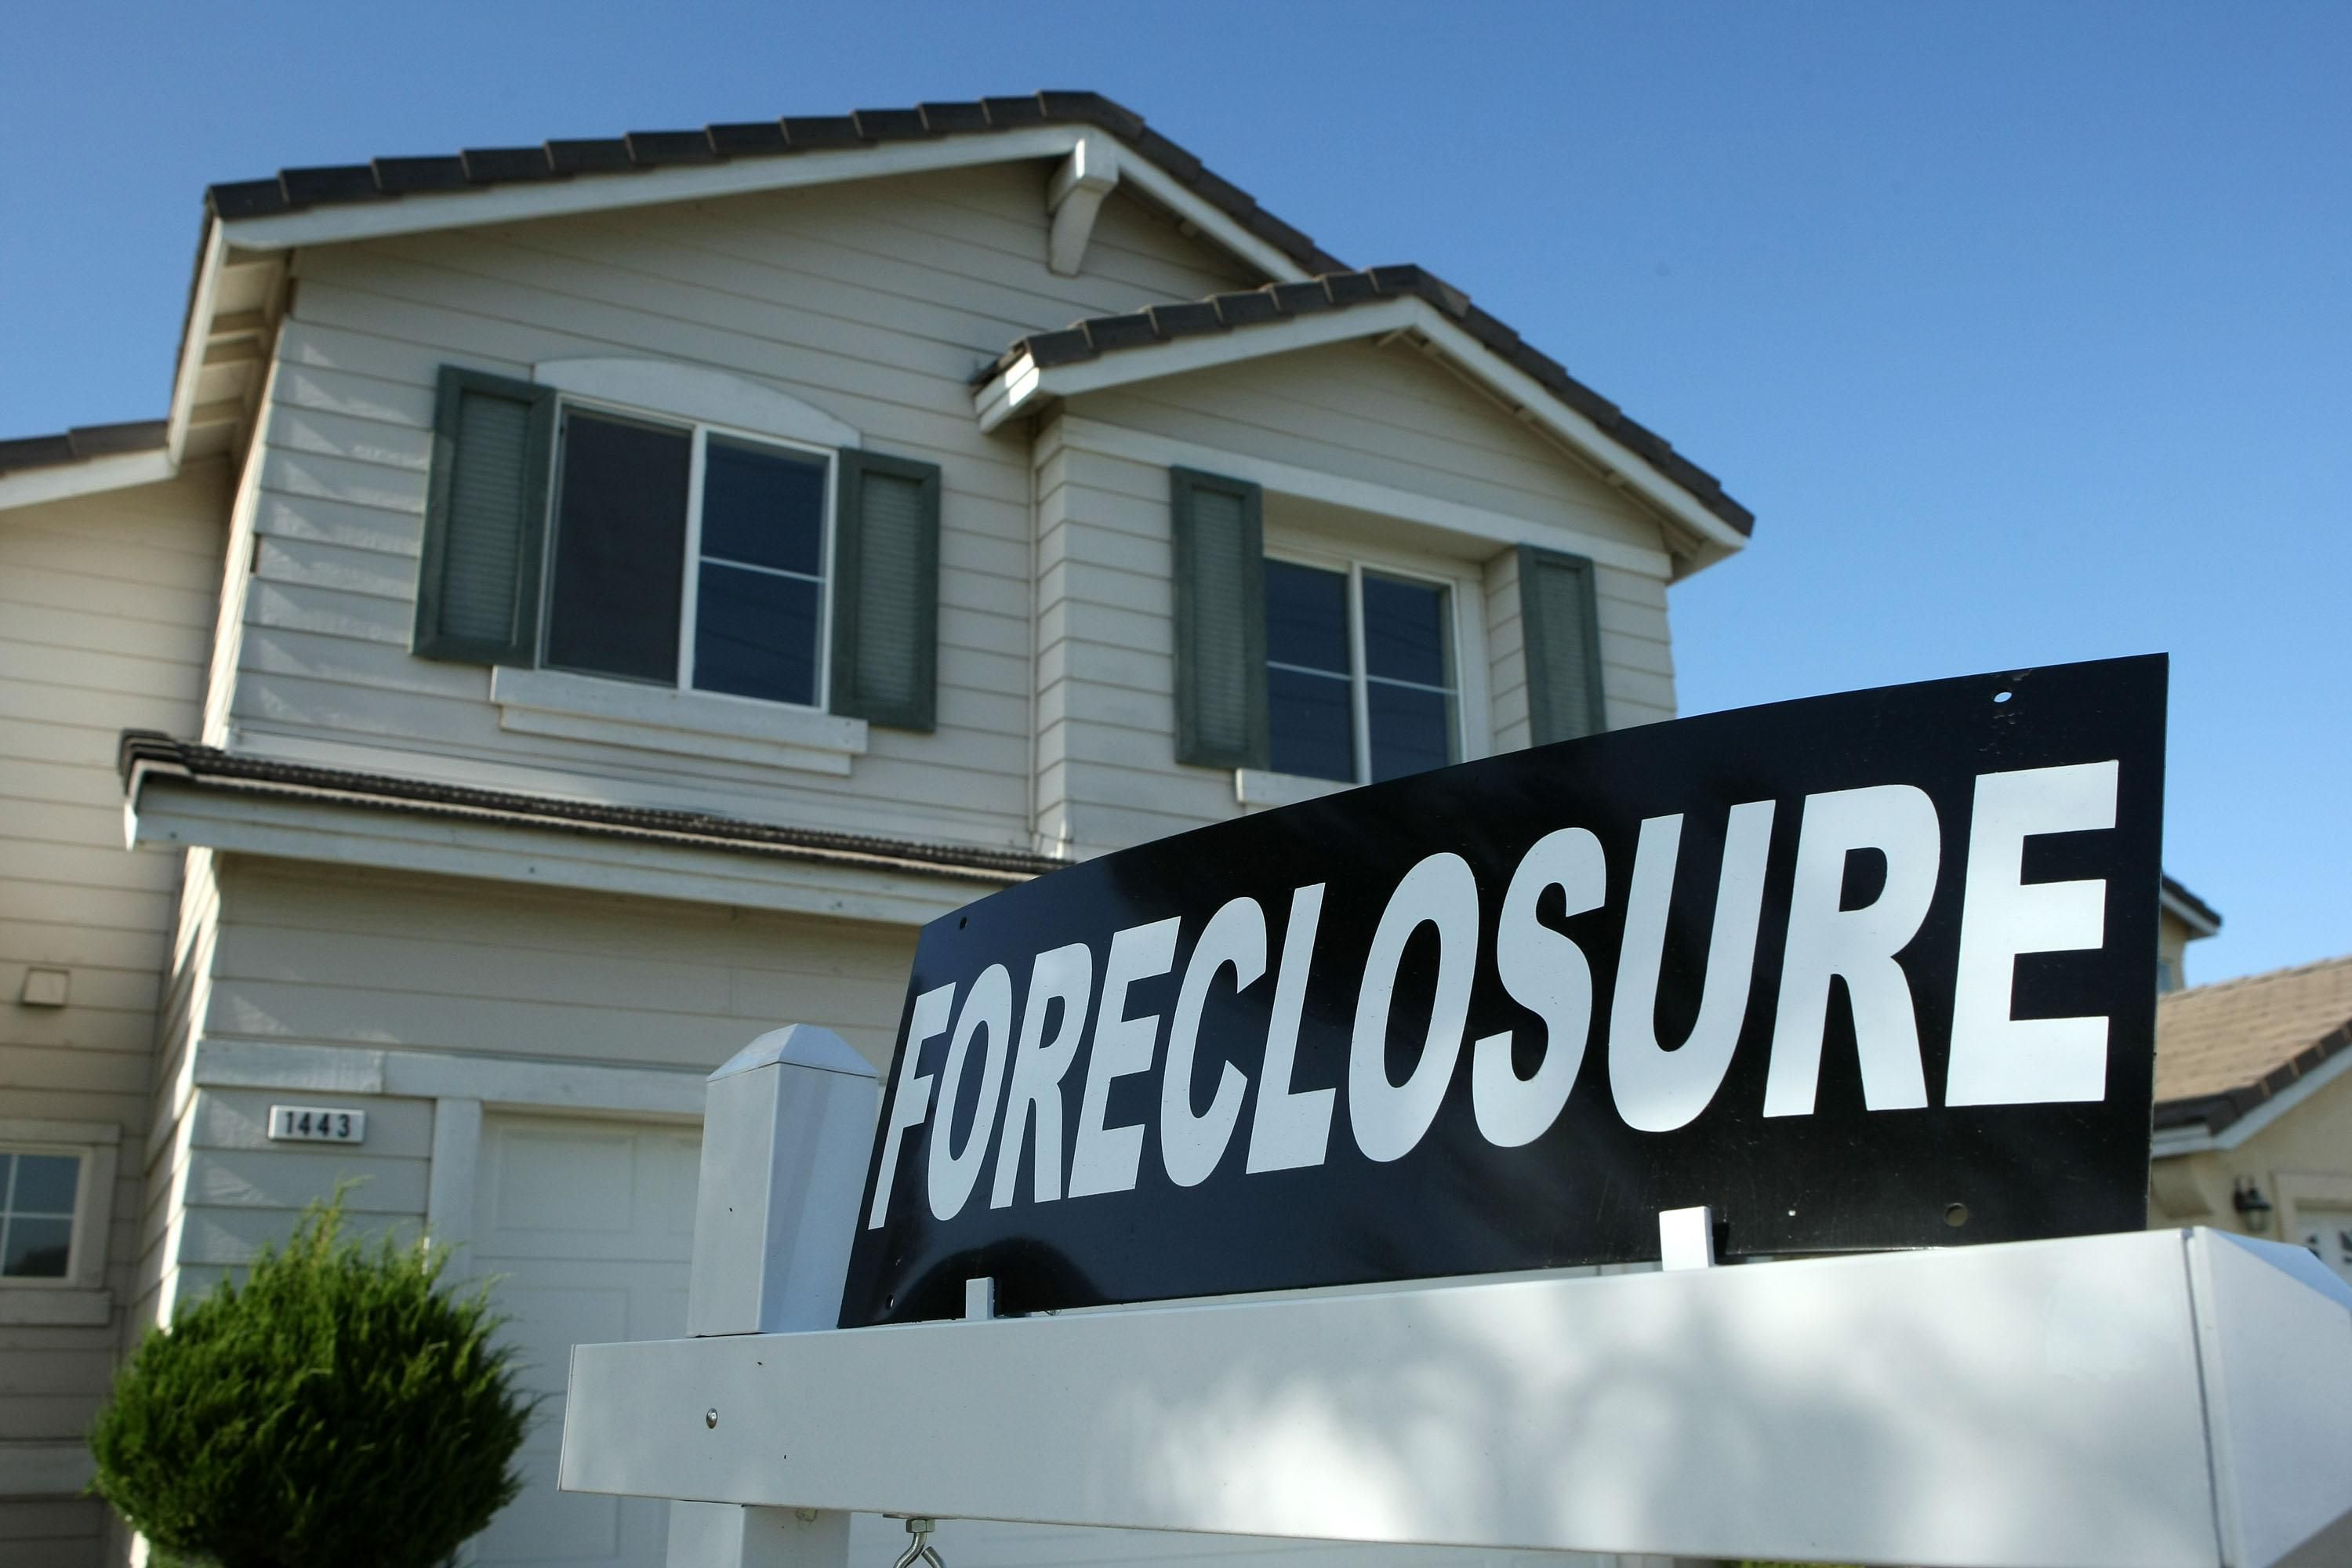 Home with a foreclosure sign in front